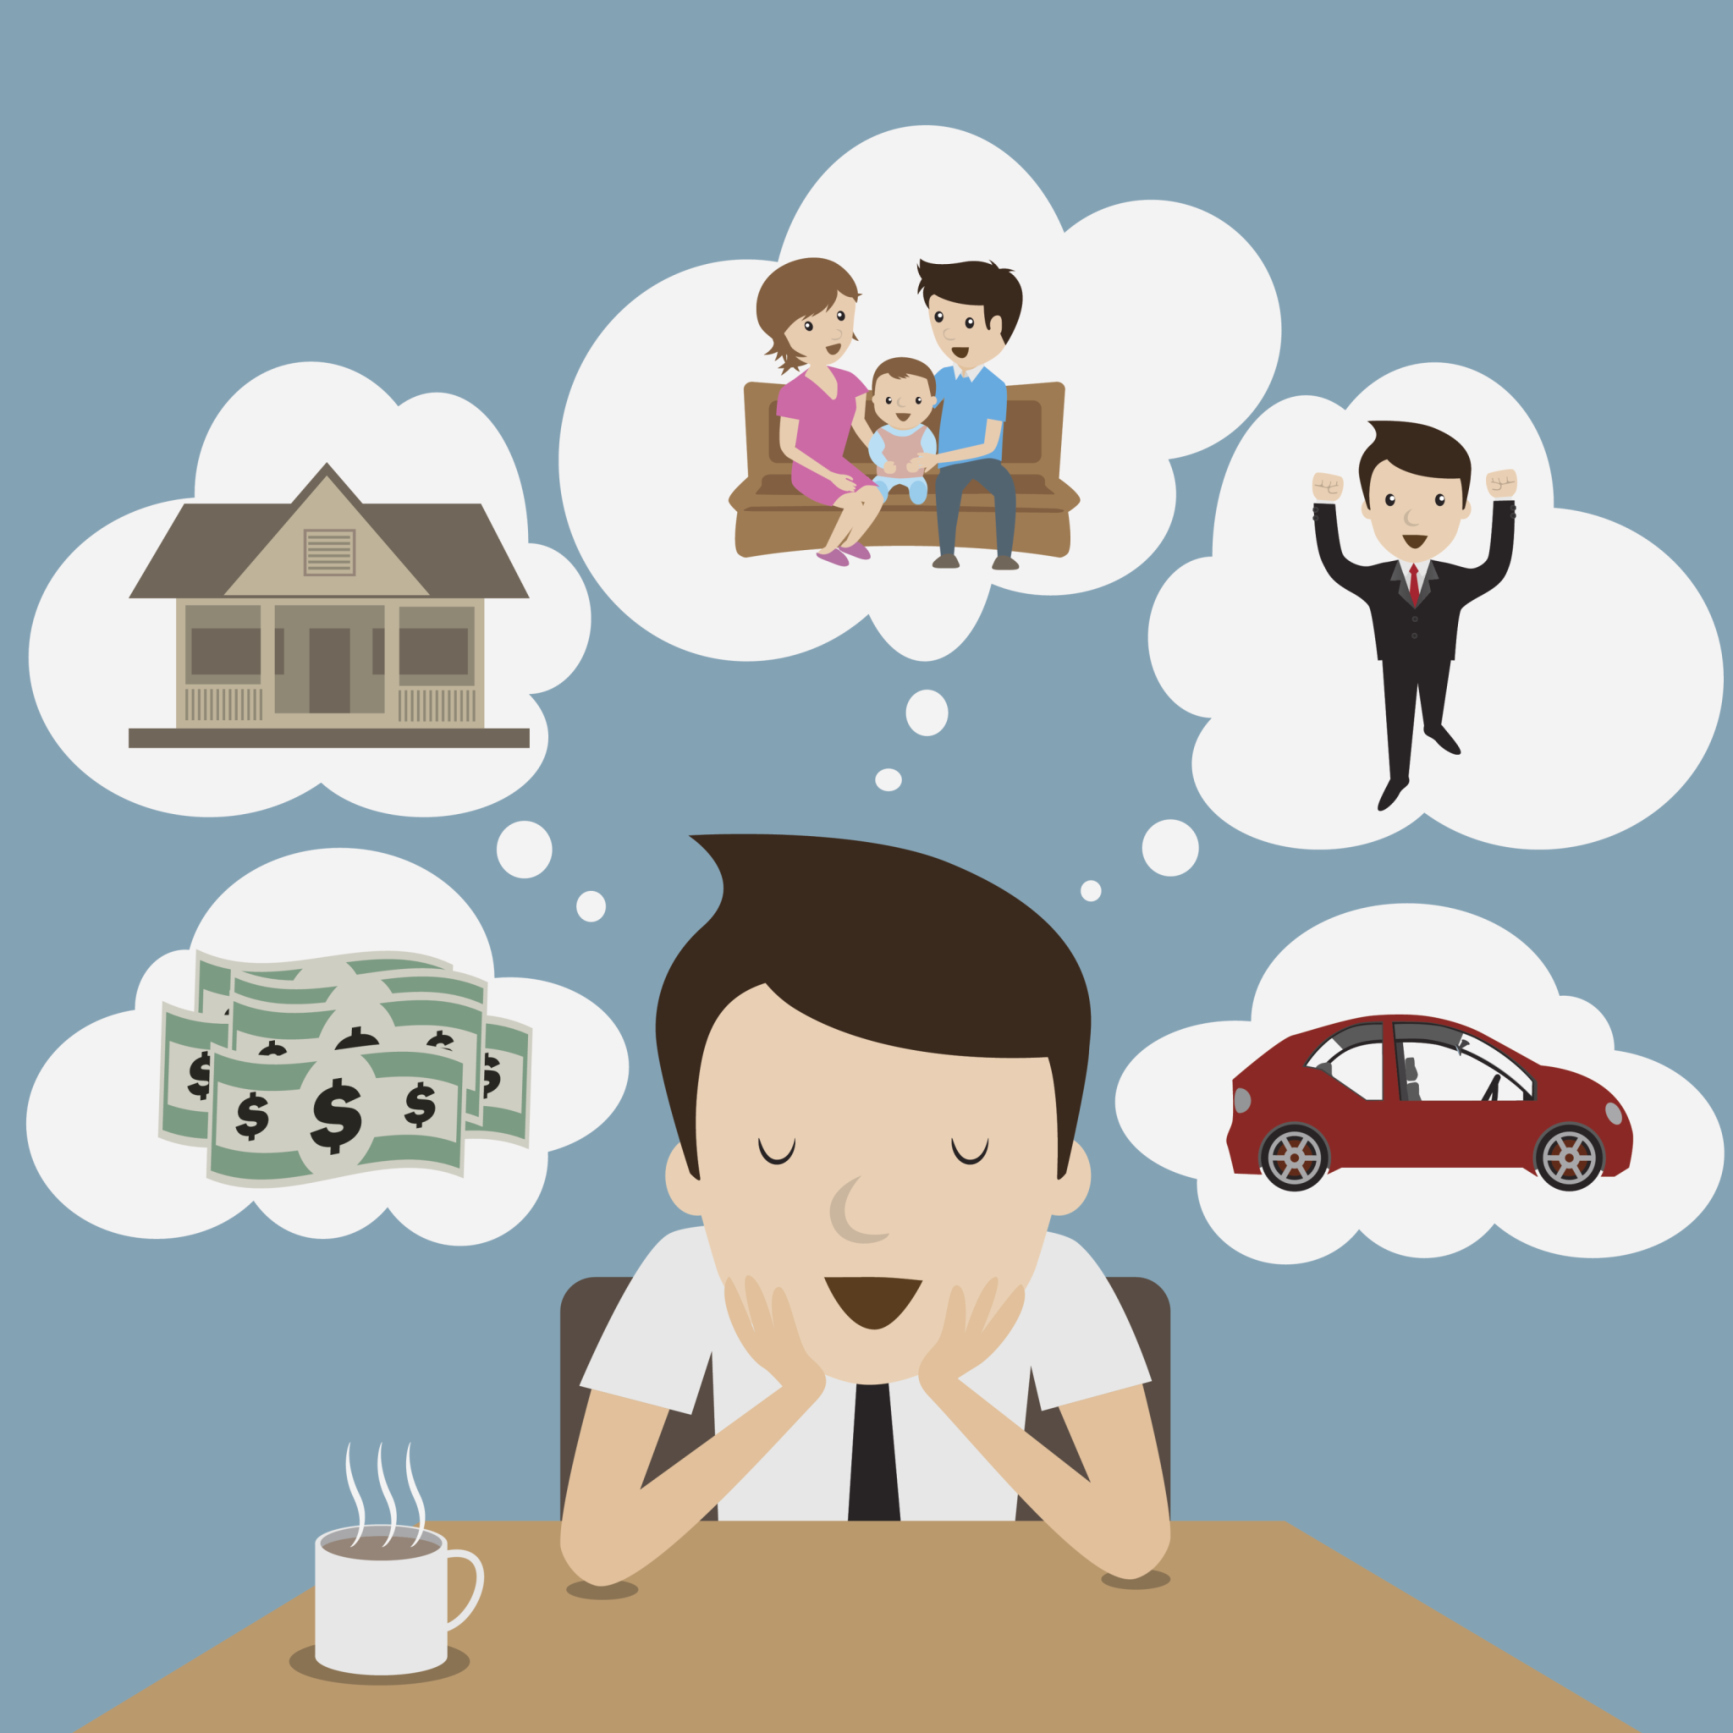 Millennials: Create financial freedom, one step at a time